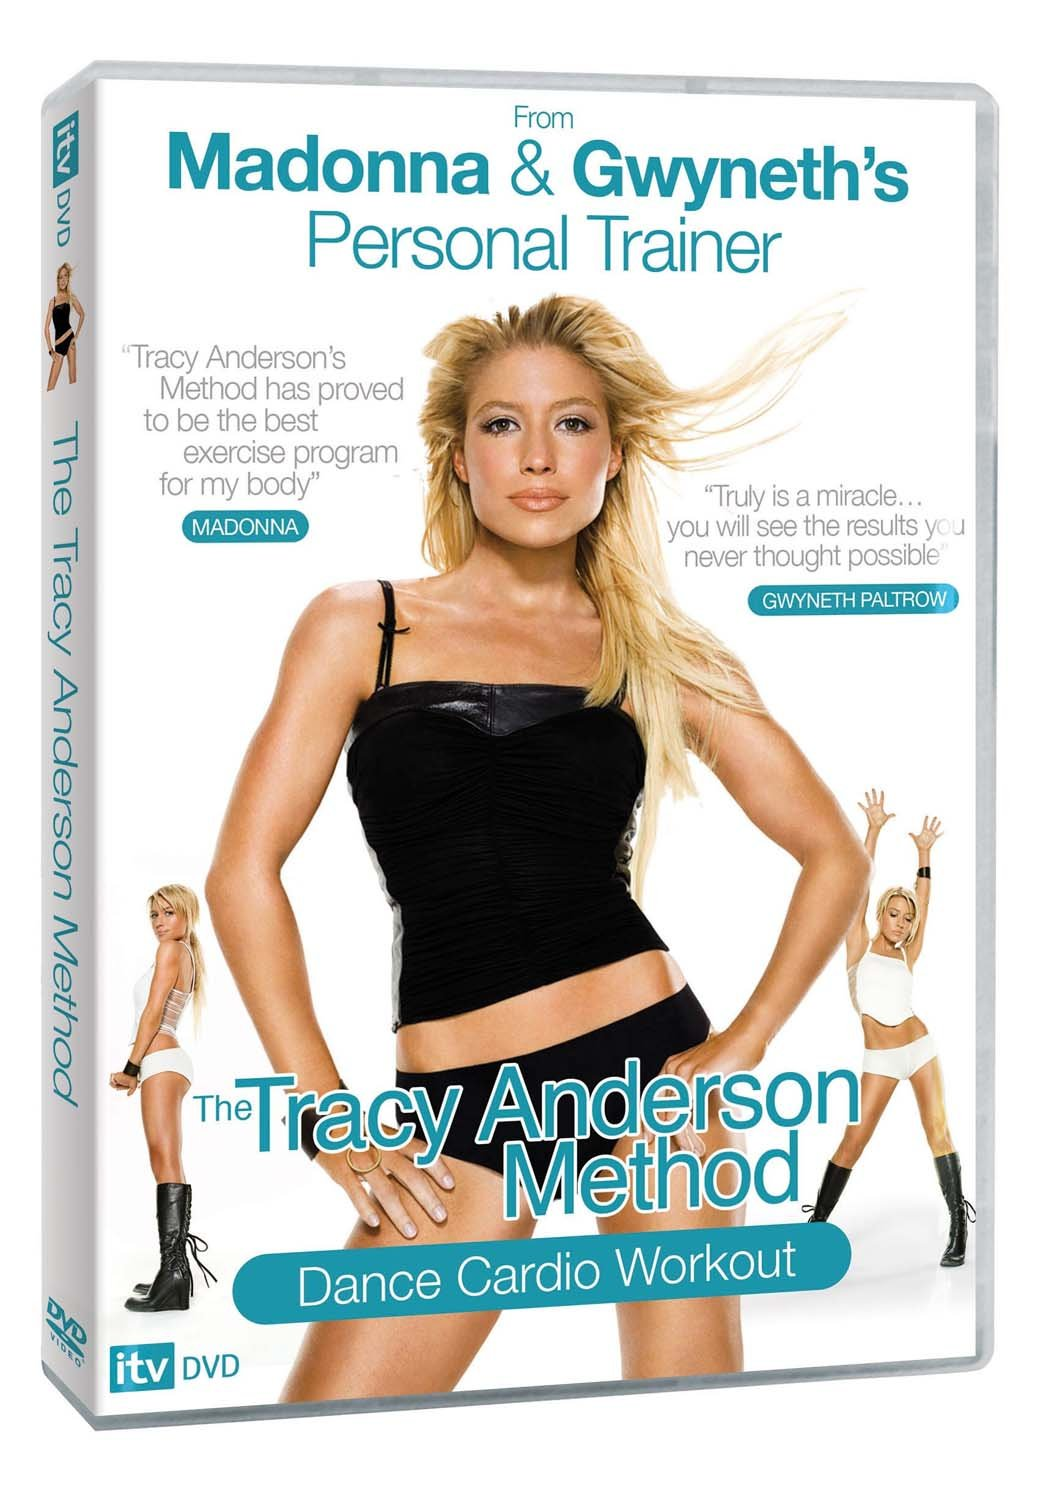 Madonna drops celebrity trainer Tracy Anderson